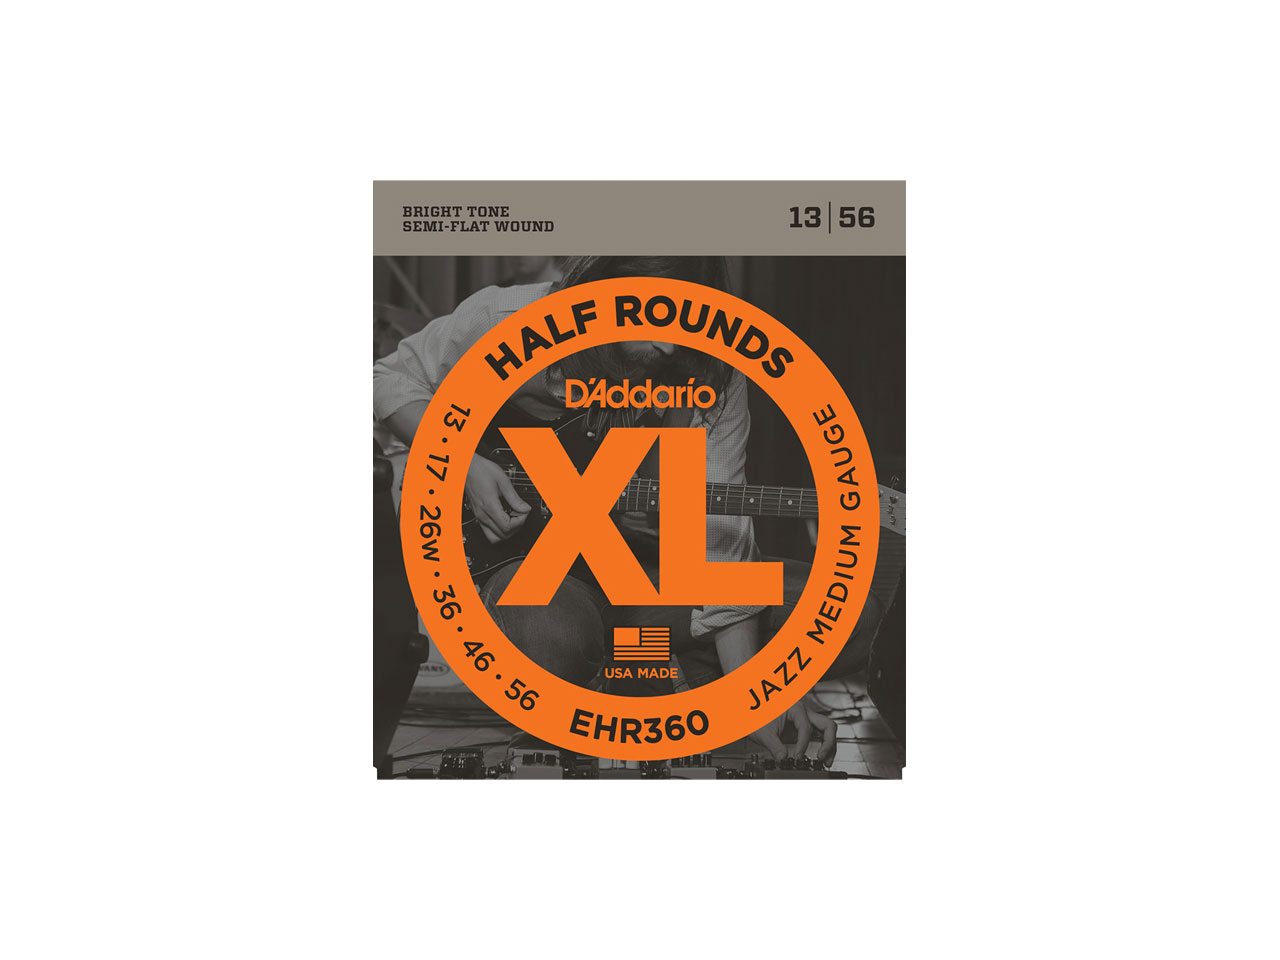 D'Addario(ダダリオ) XL Half Rounds Jazz Medium / EHR360